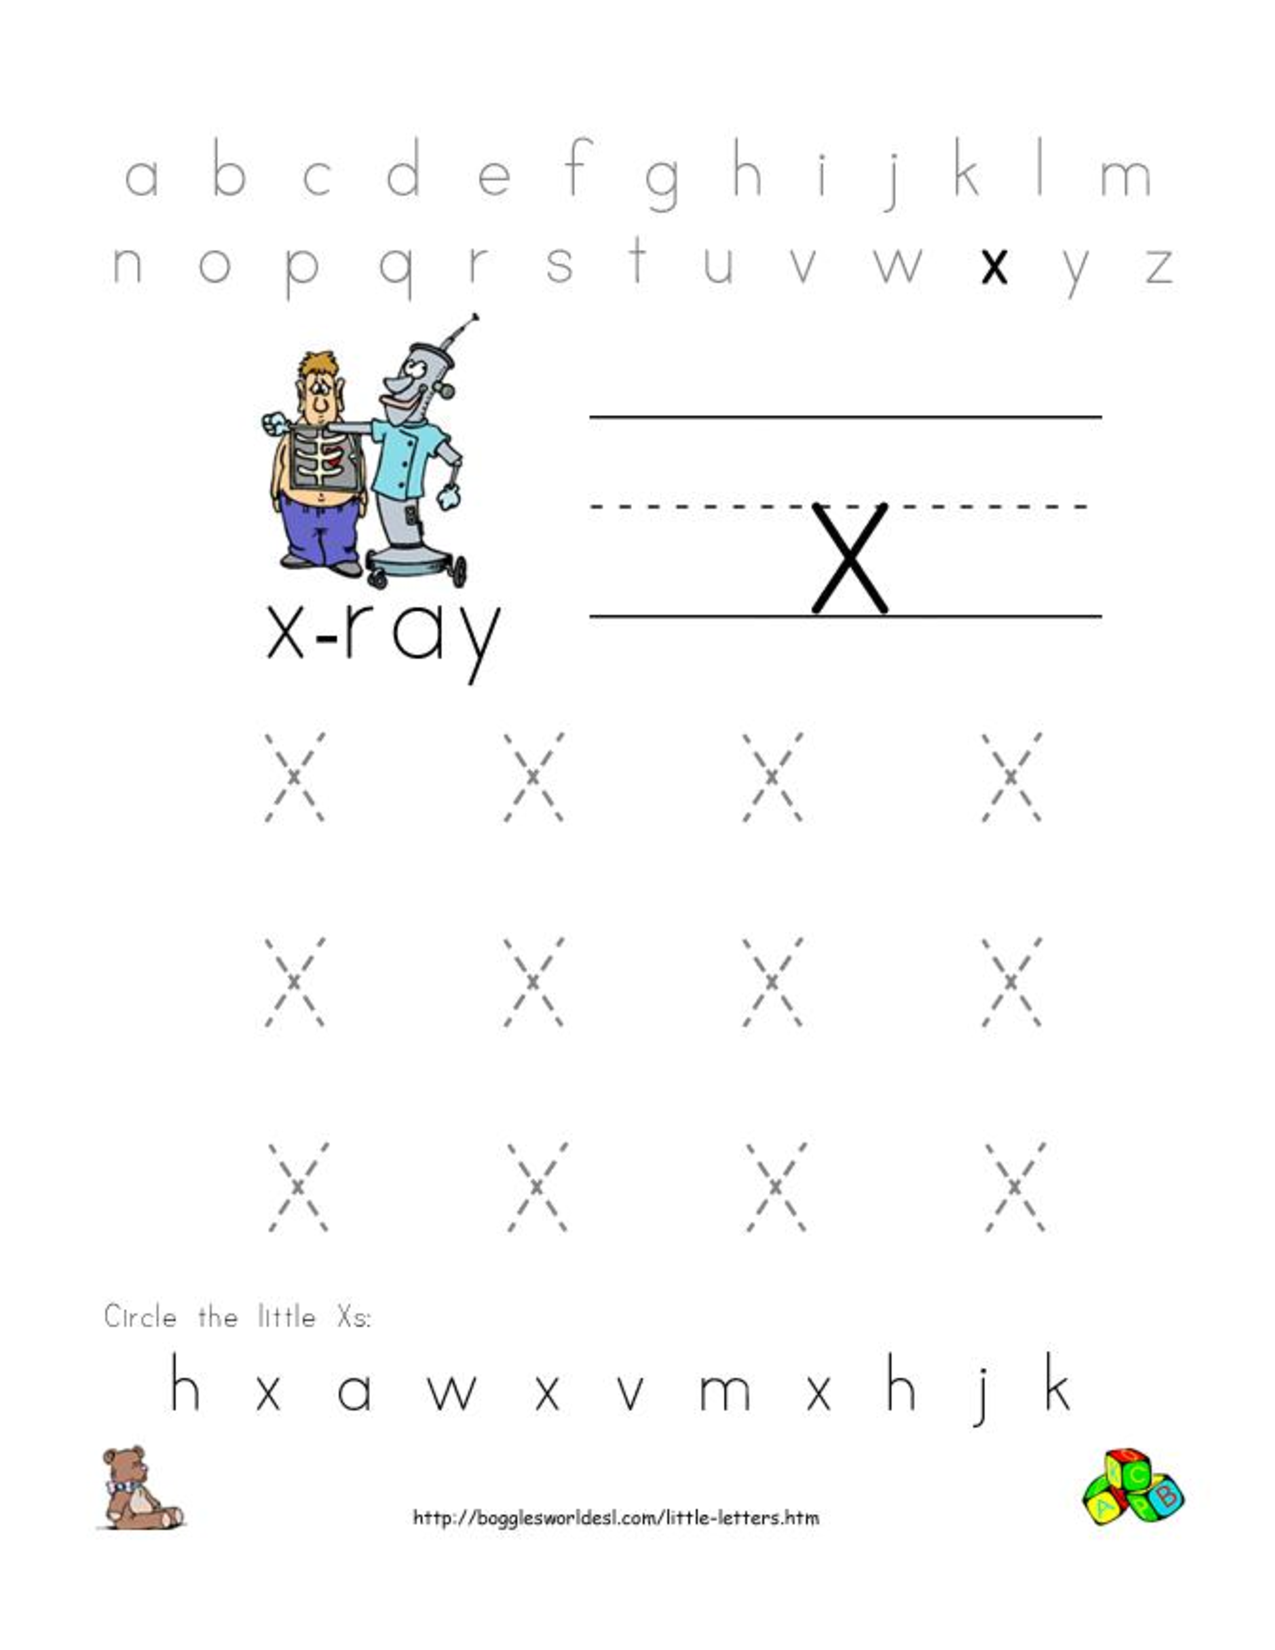 Preschool letters worksheet - Alphabet Worksheets For Preschoolers Alphabet Worksheet Little Letter X